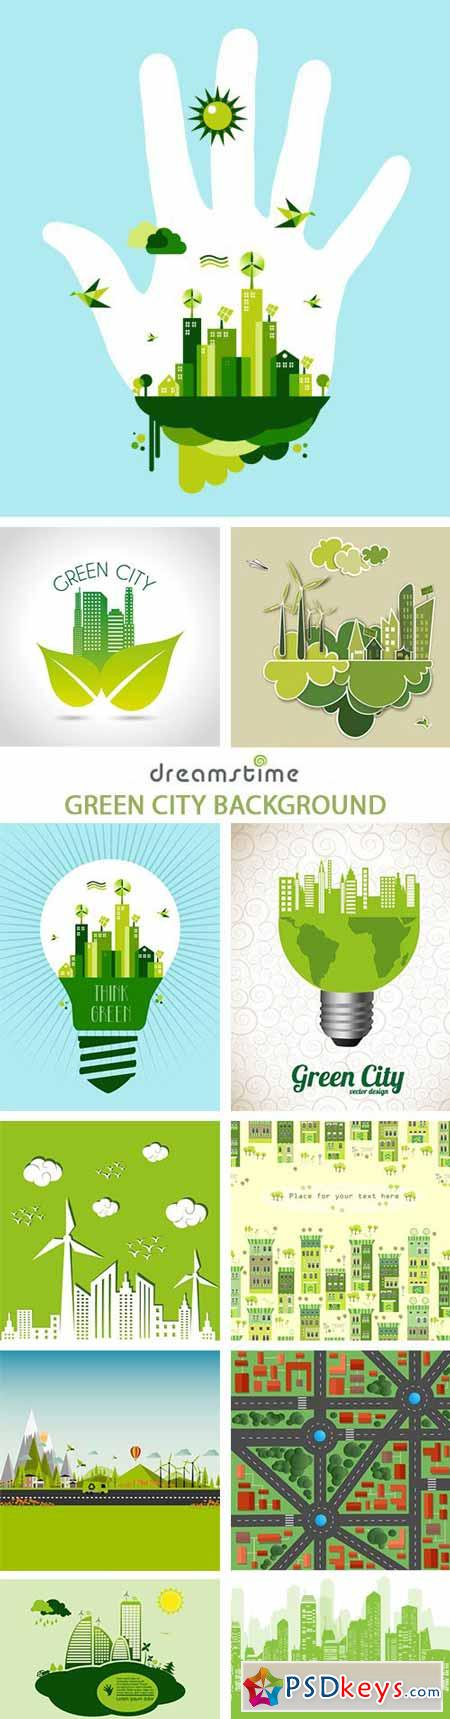 Green City Background - 25xEPS